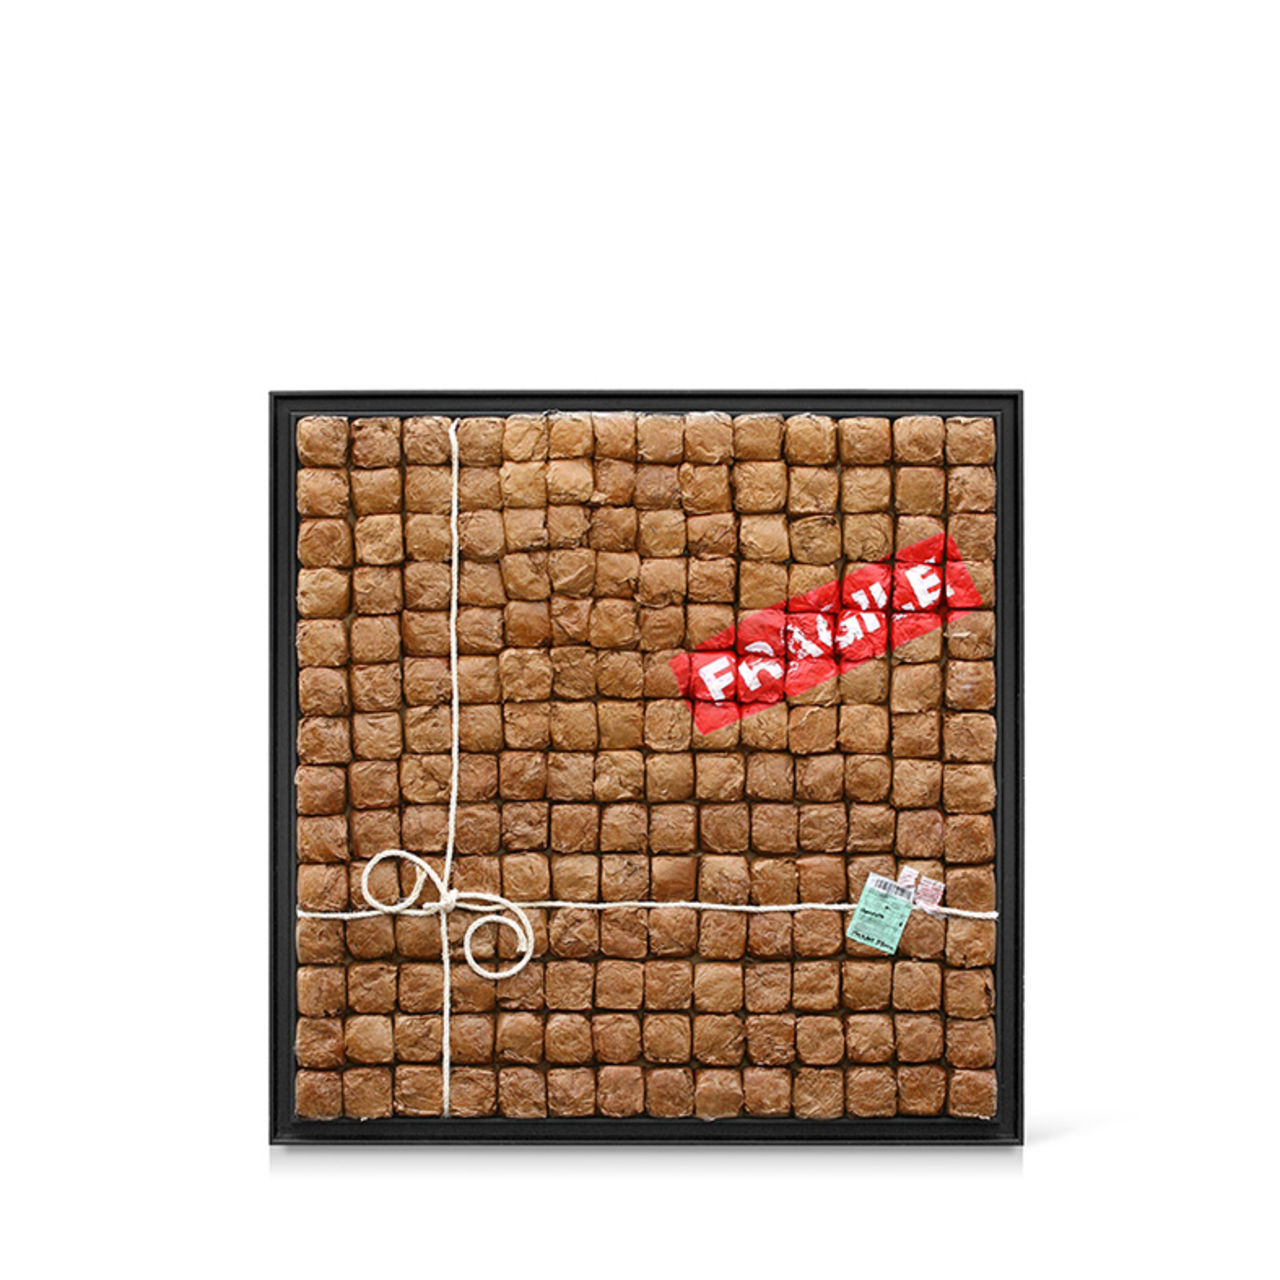 jean-michel buche 94 - Chocolate's squares delivery 112X112